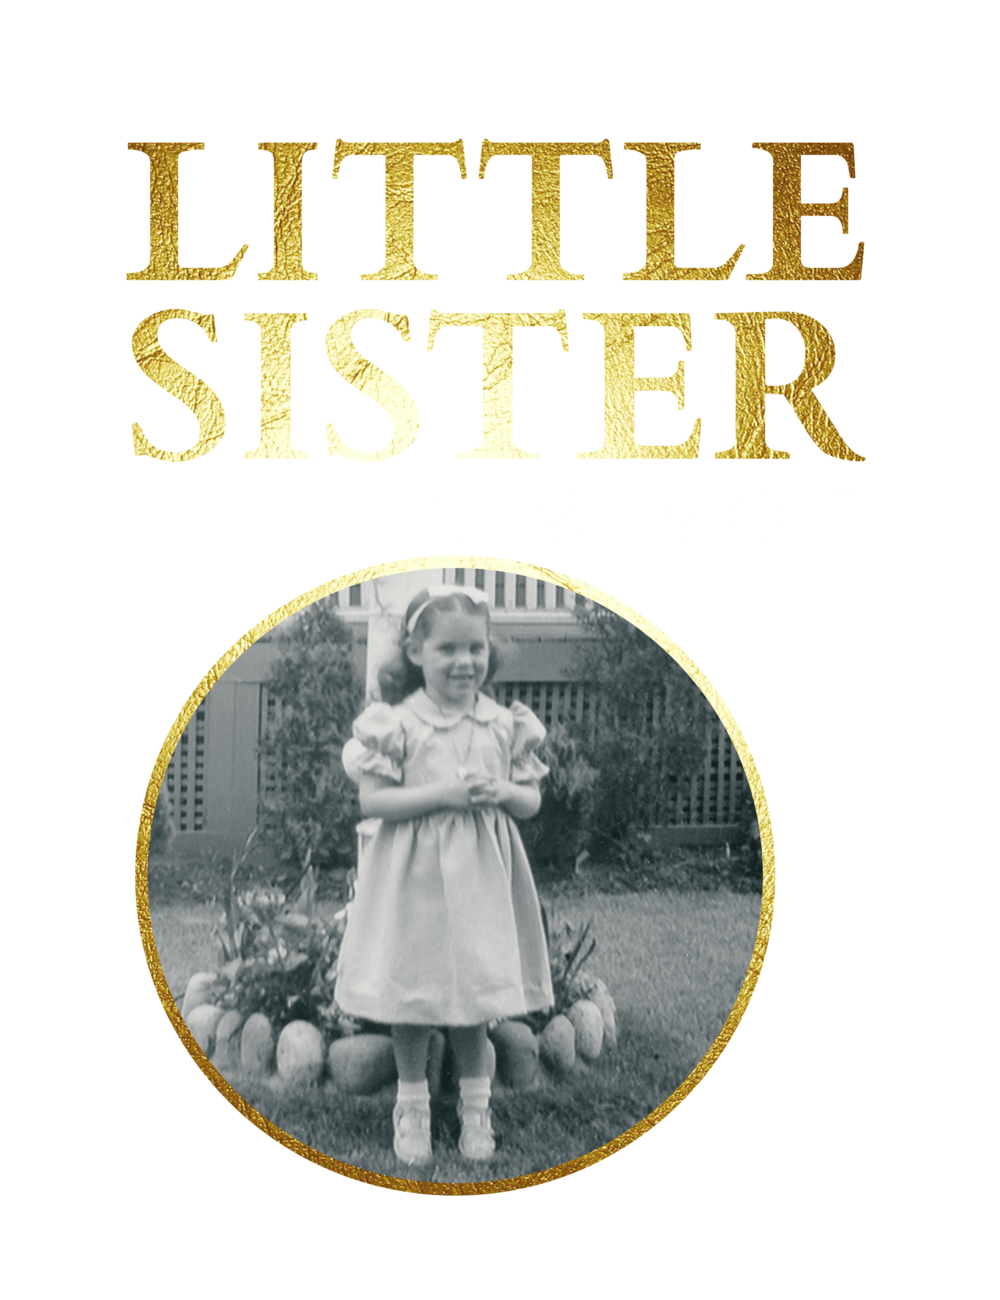 little-sister-cover-transparent.png